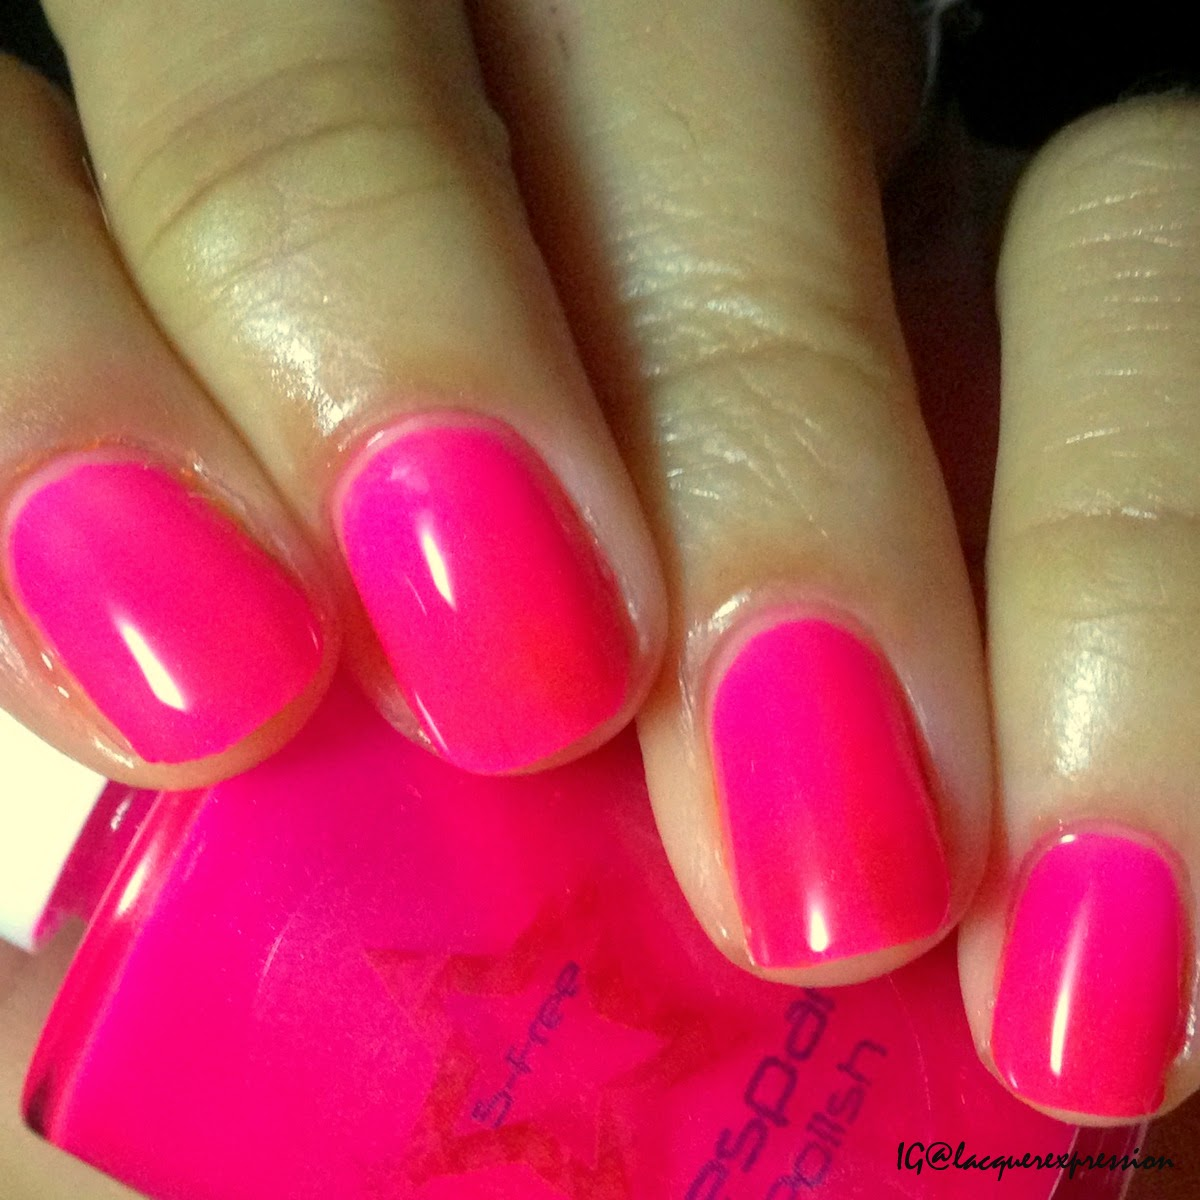 swatch and review of Ballerina Bunny nail polish by Shinespark